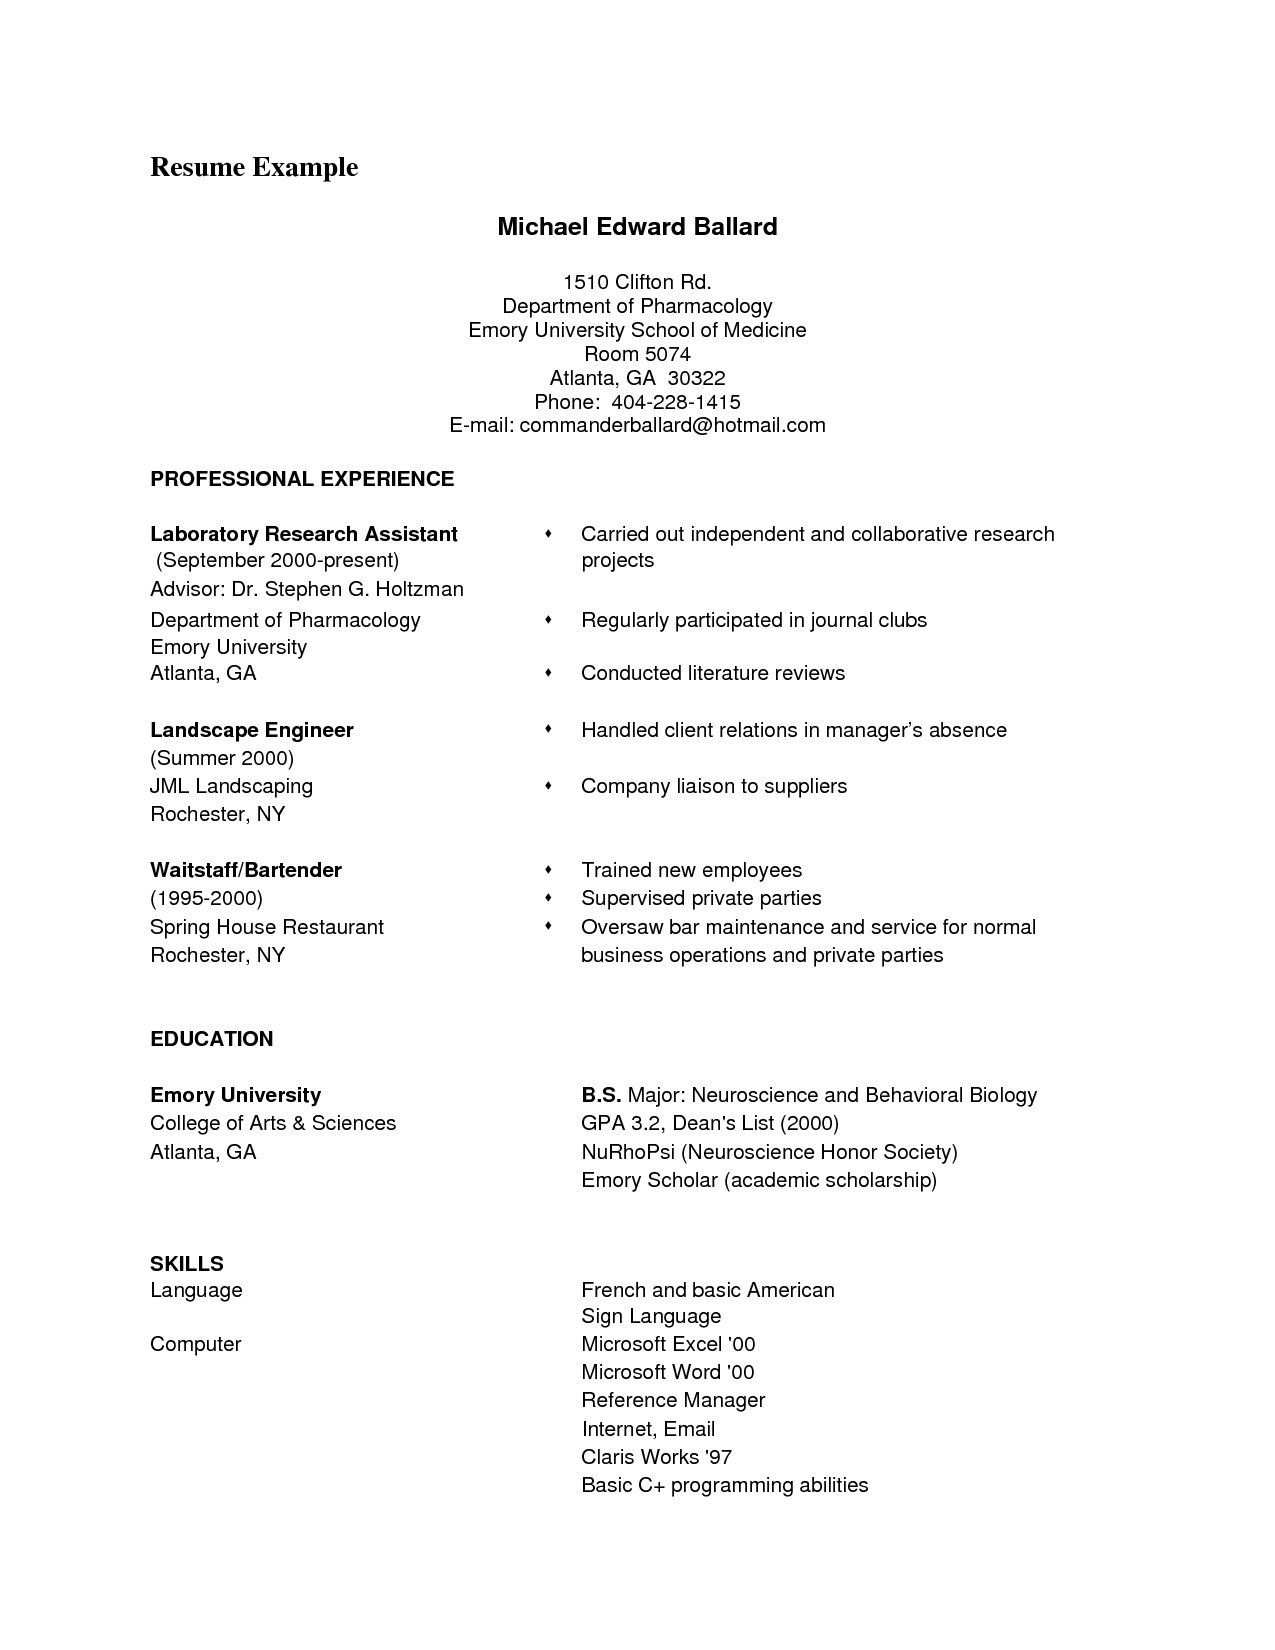 resume ppt template example-Classic Resume Templates ¢Ë†Å¡ Powerpoint Templates for Biology New Prophoto Templates 0d 4-o